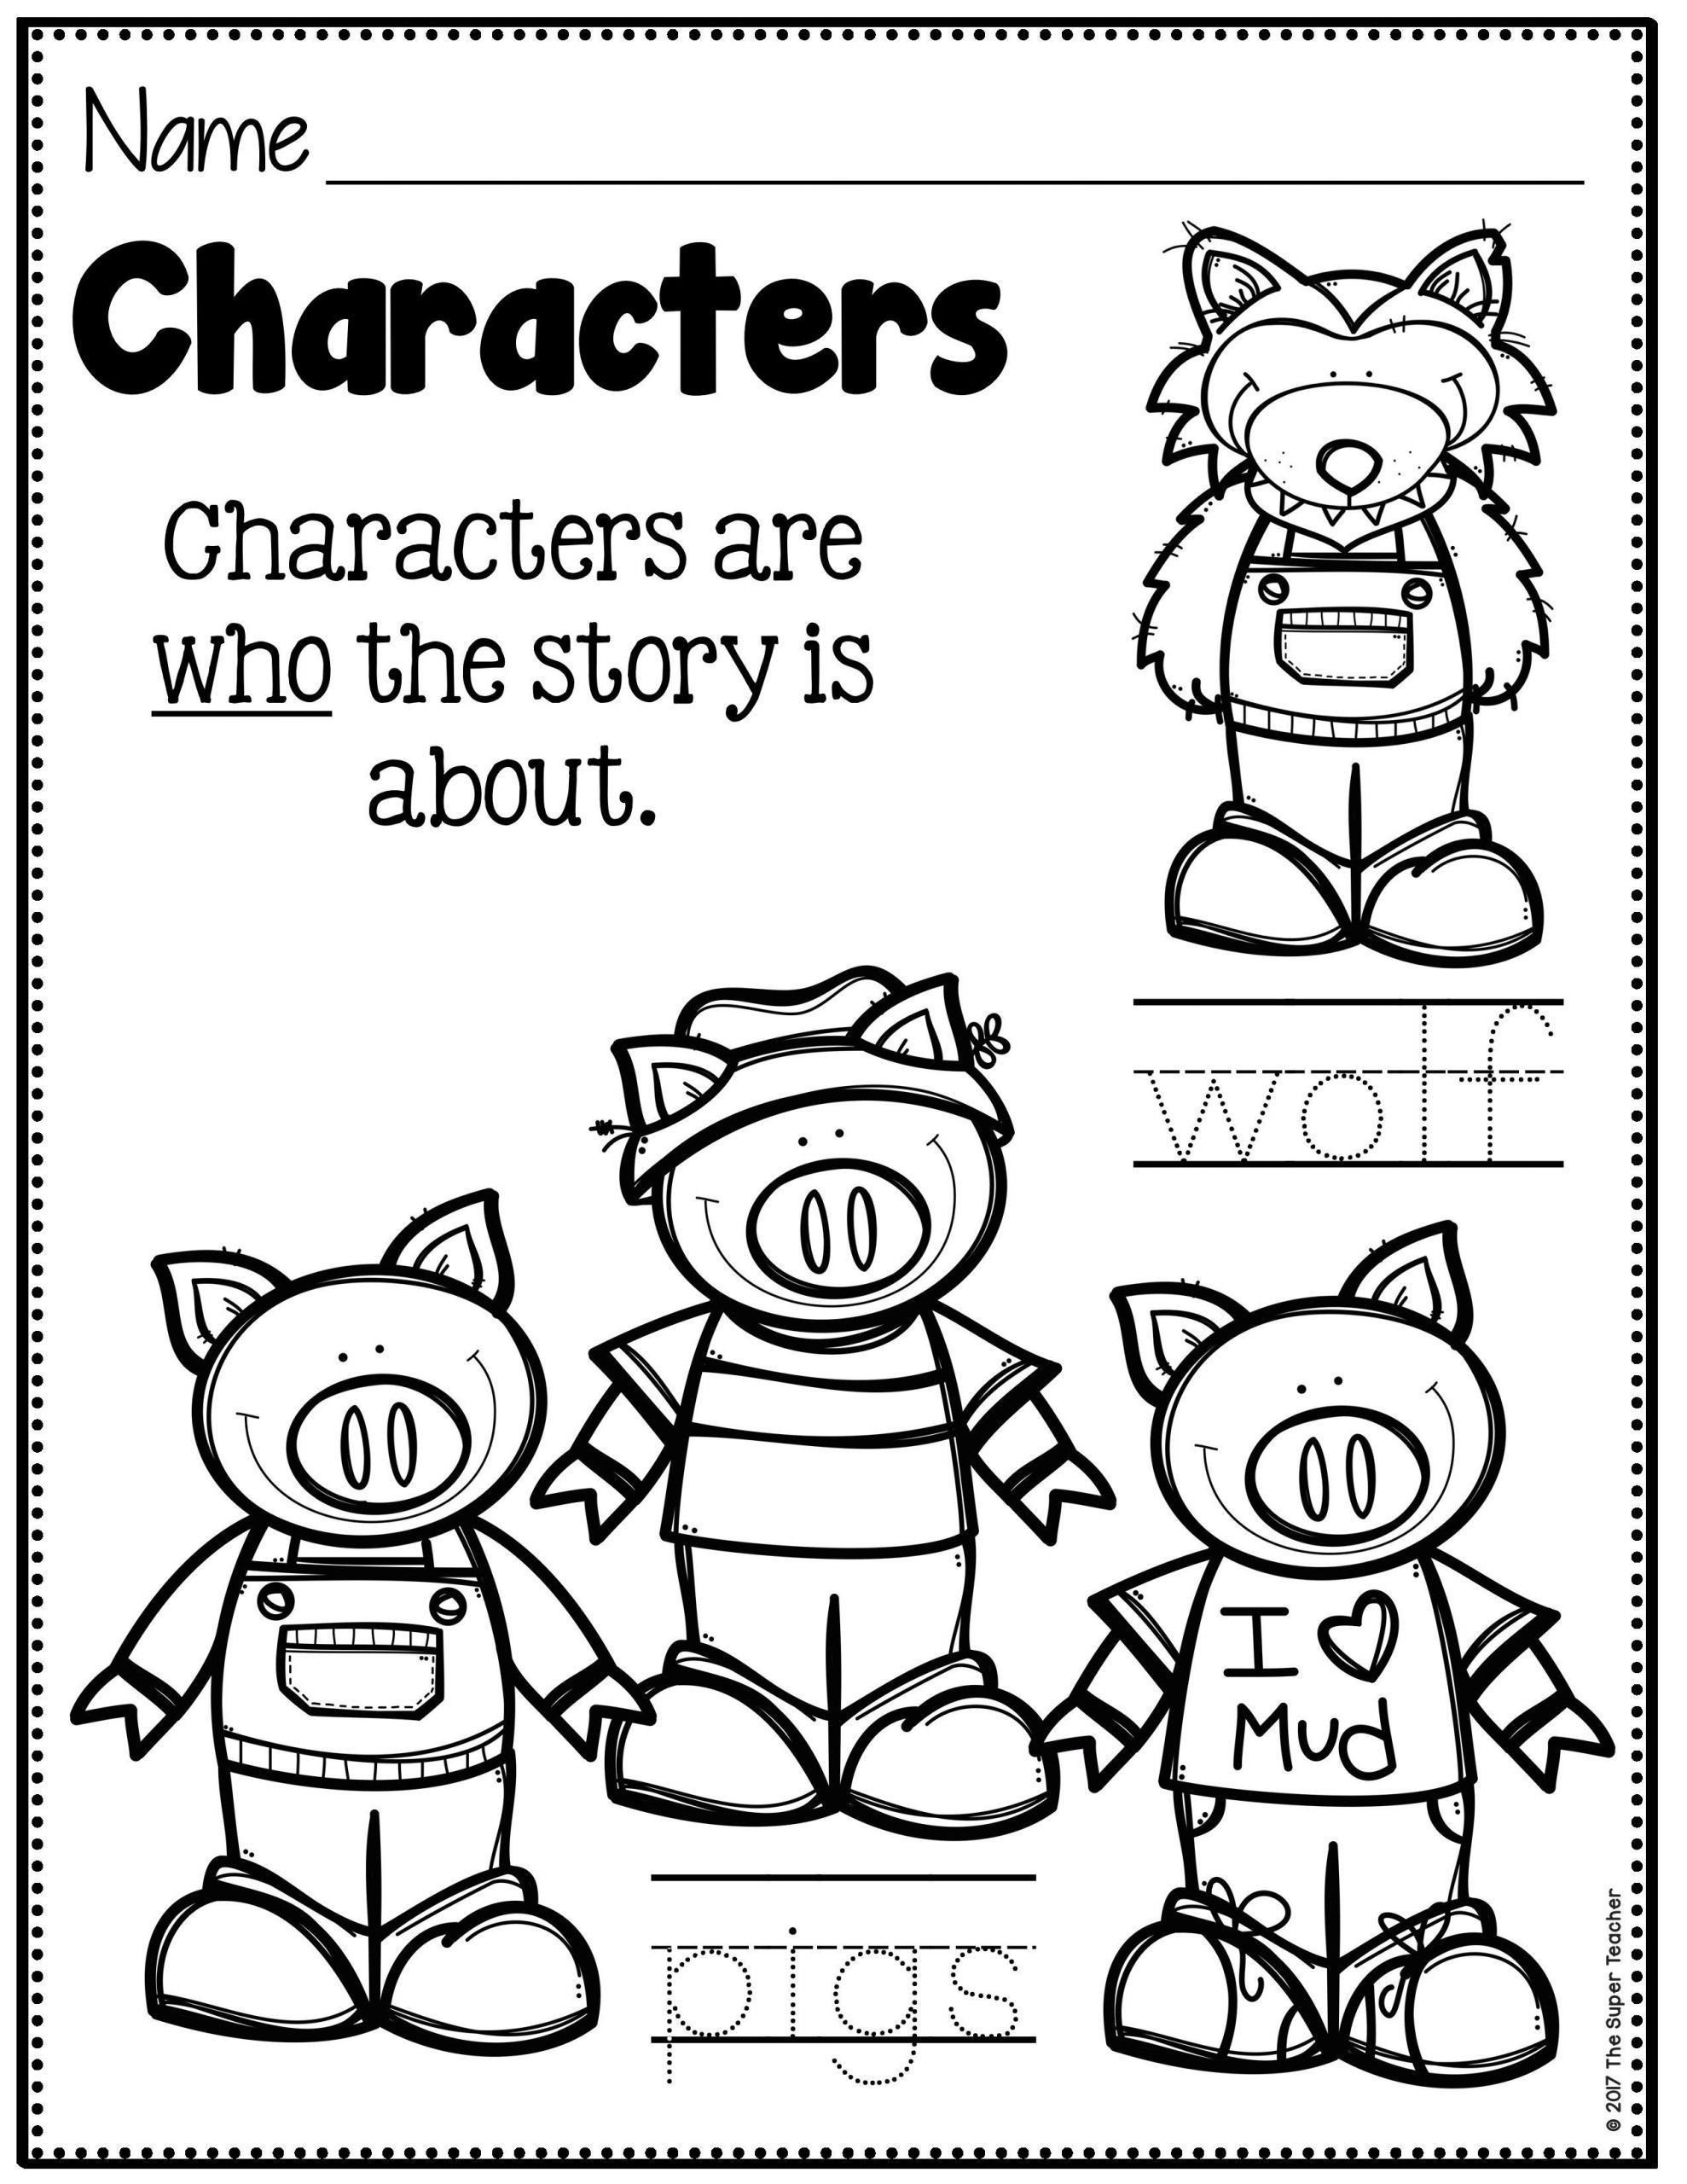 Mammal Worksheets First Grade 6 Free Math Worksheets First Grade 1 Addition Number Bonds